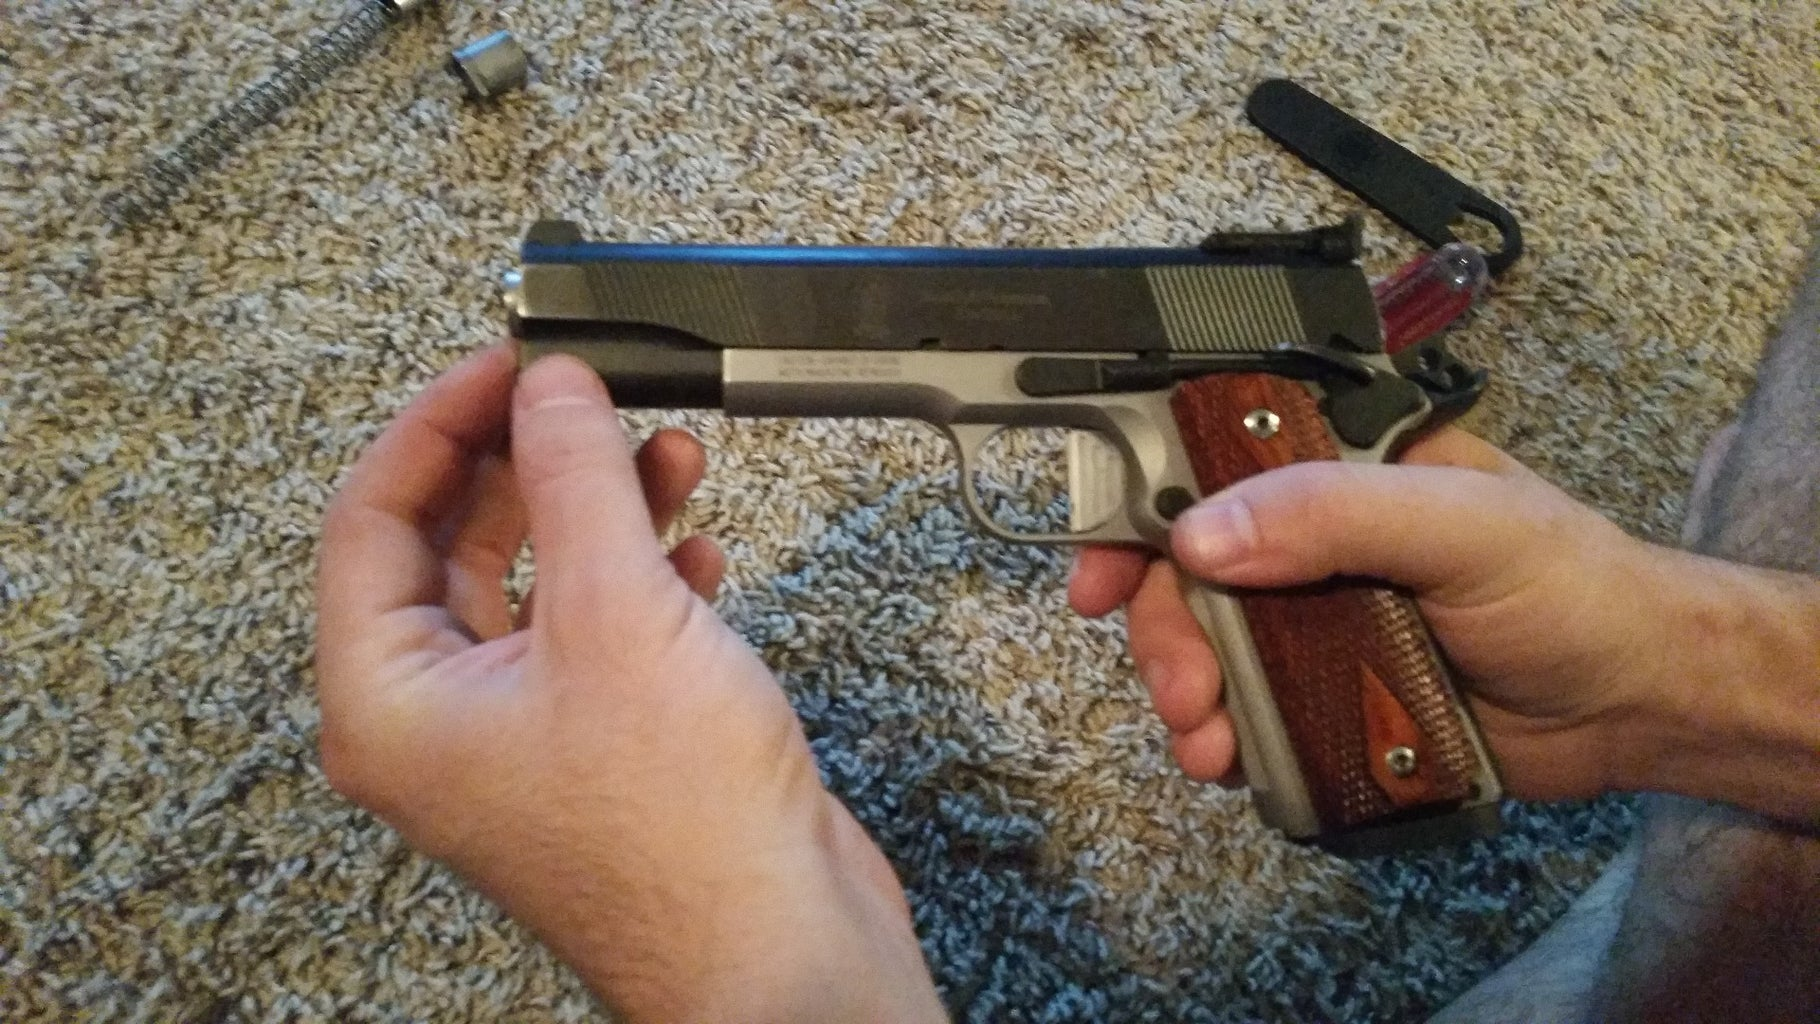 Installing the Spring and Barrel Lock